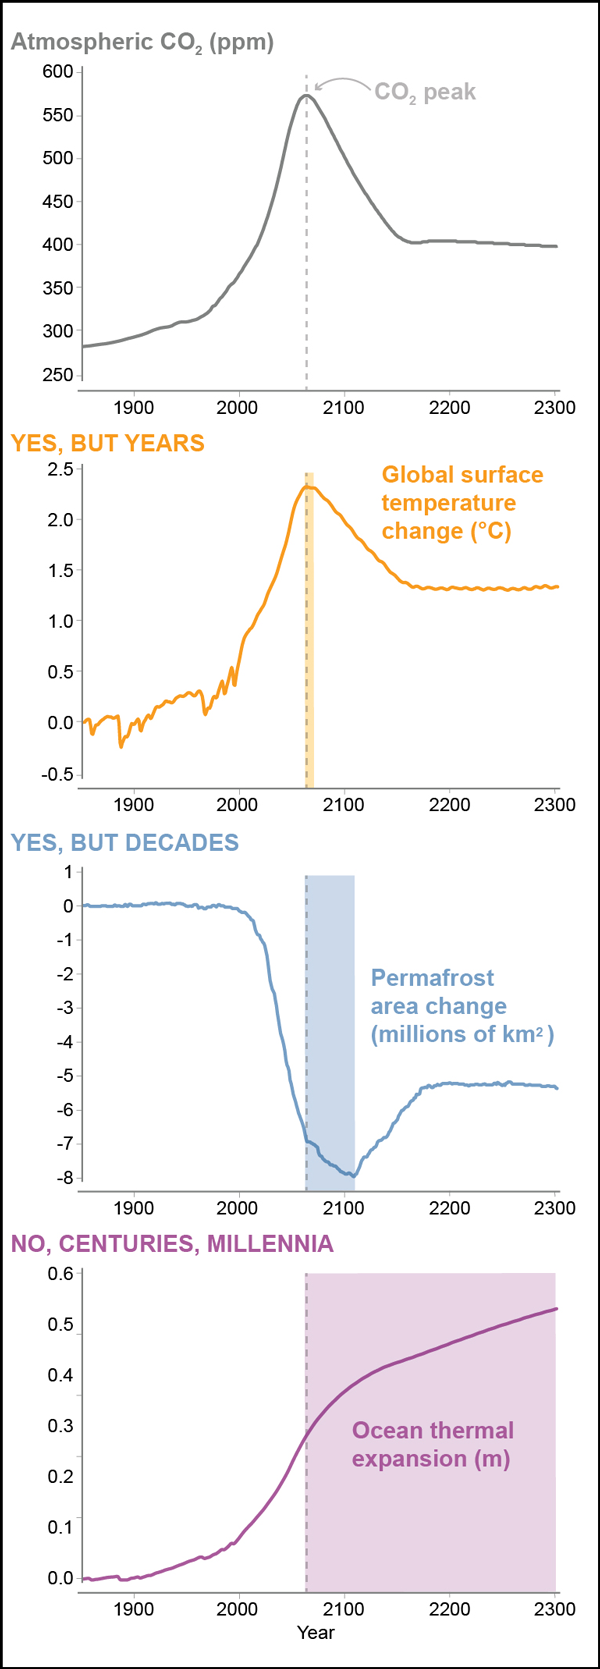 Graphs of surface temperature, permafrost area, and thermal ocean expansion.